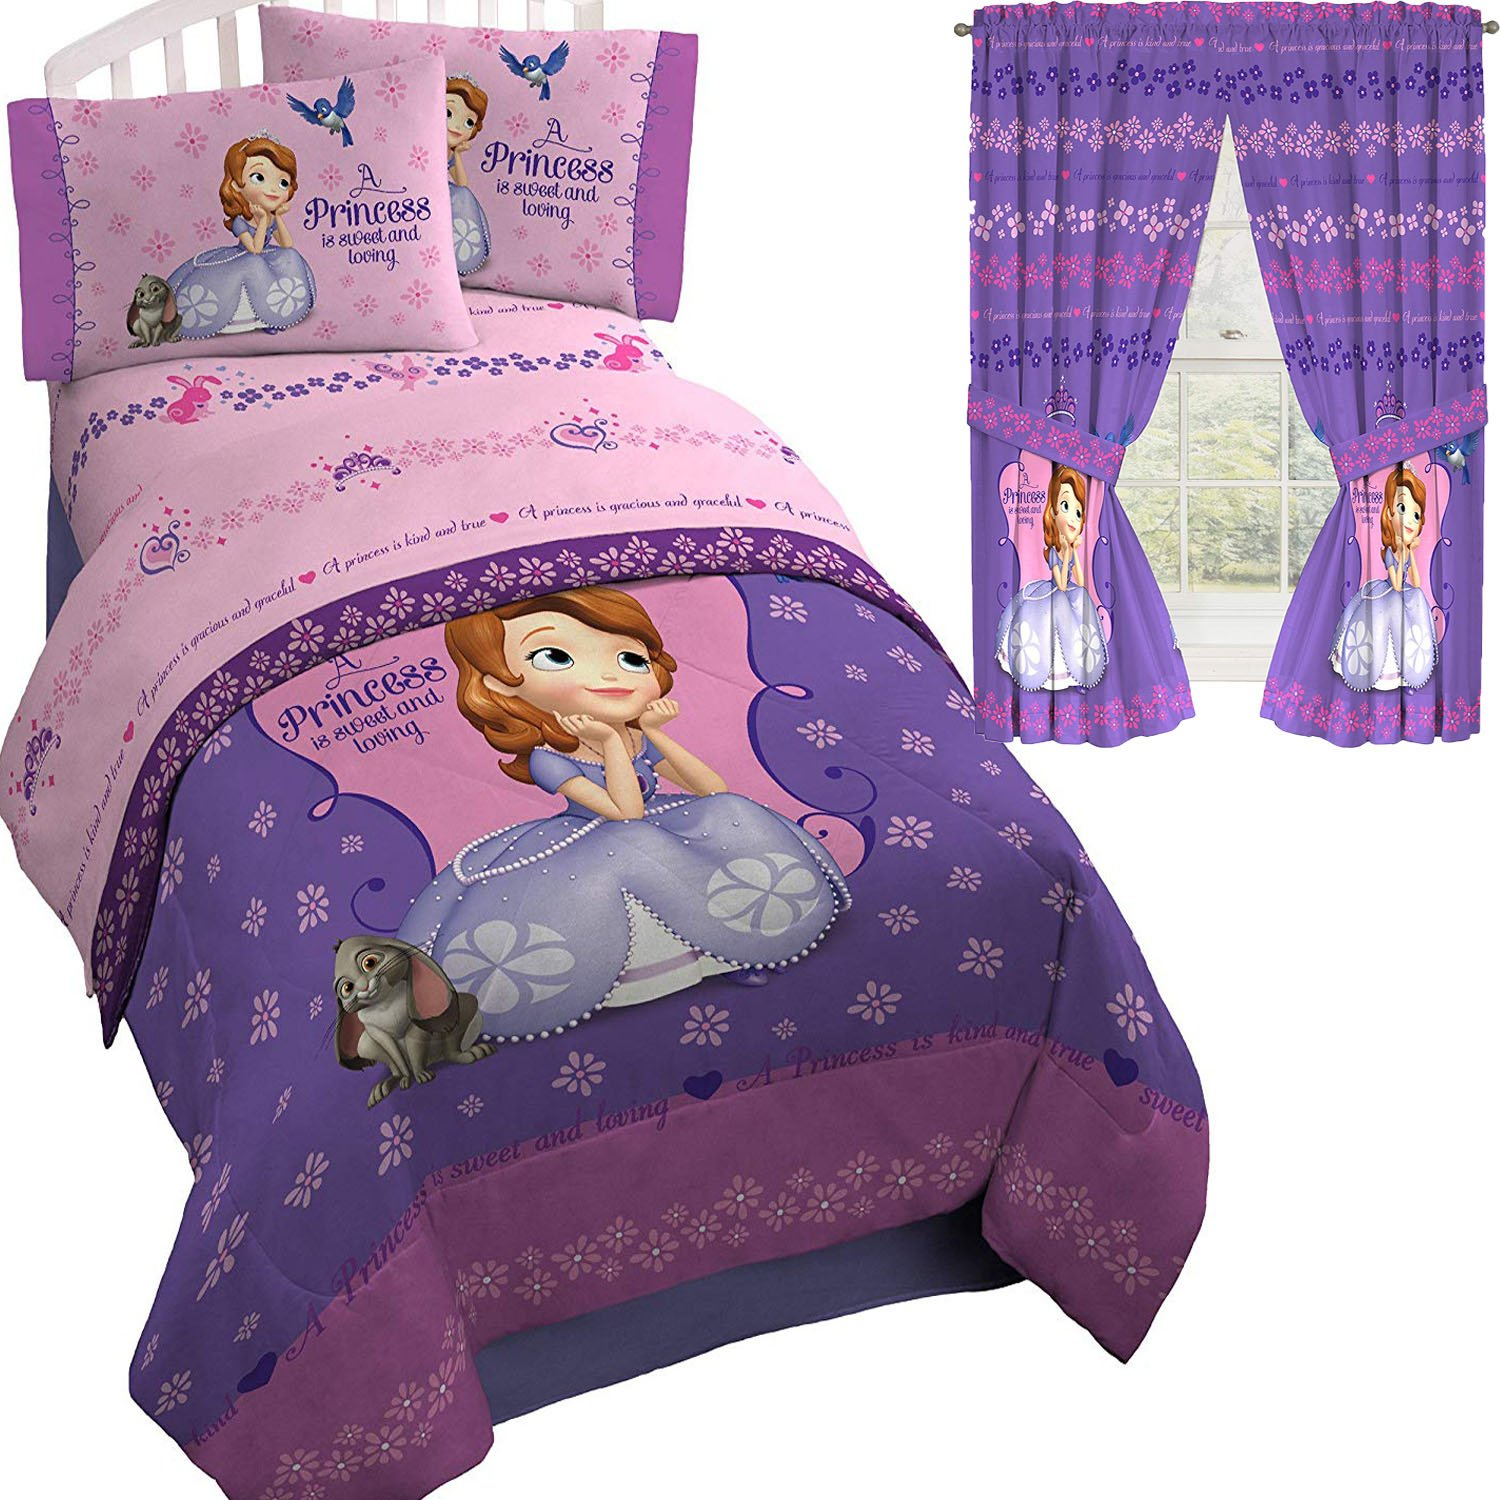 Princess Sofia the First Disney Purple TWIN/FULL Comforter(72'' x 86'') and Sheets + Curtains! (5pc TWIN/FULL Comforter w/TWIN SIZE SHEETS)